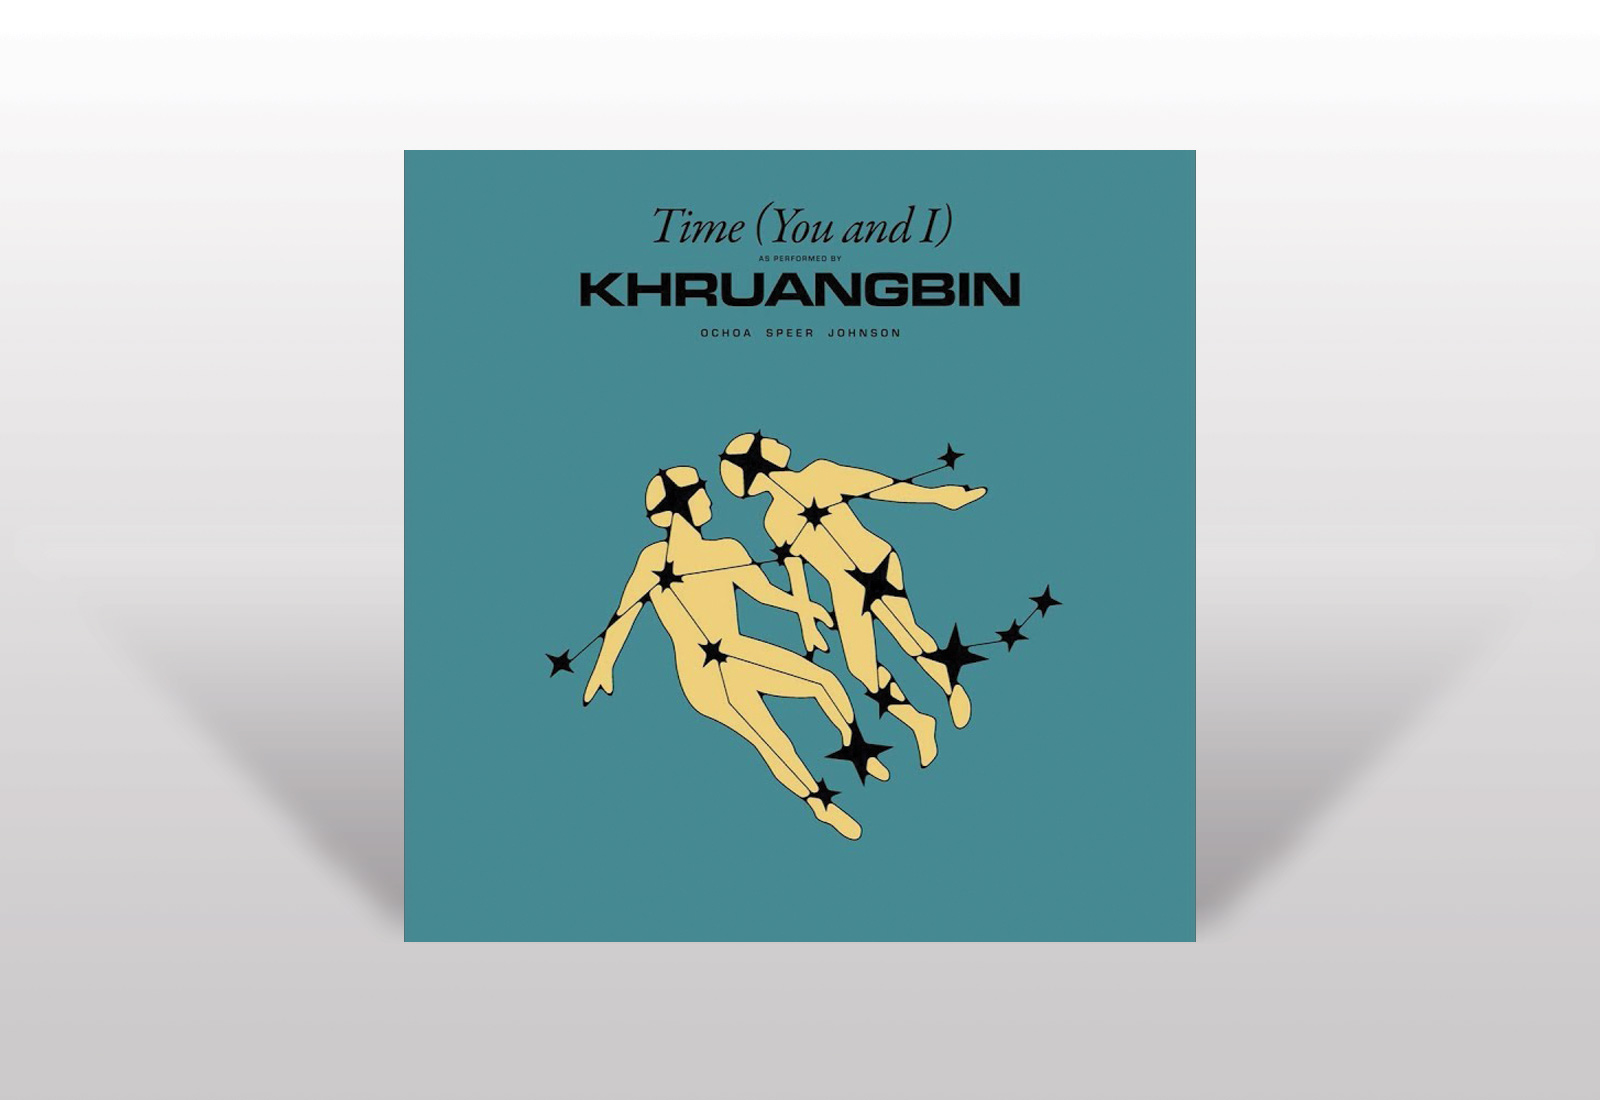 Khruangbin Time (You and I)